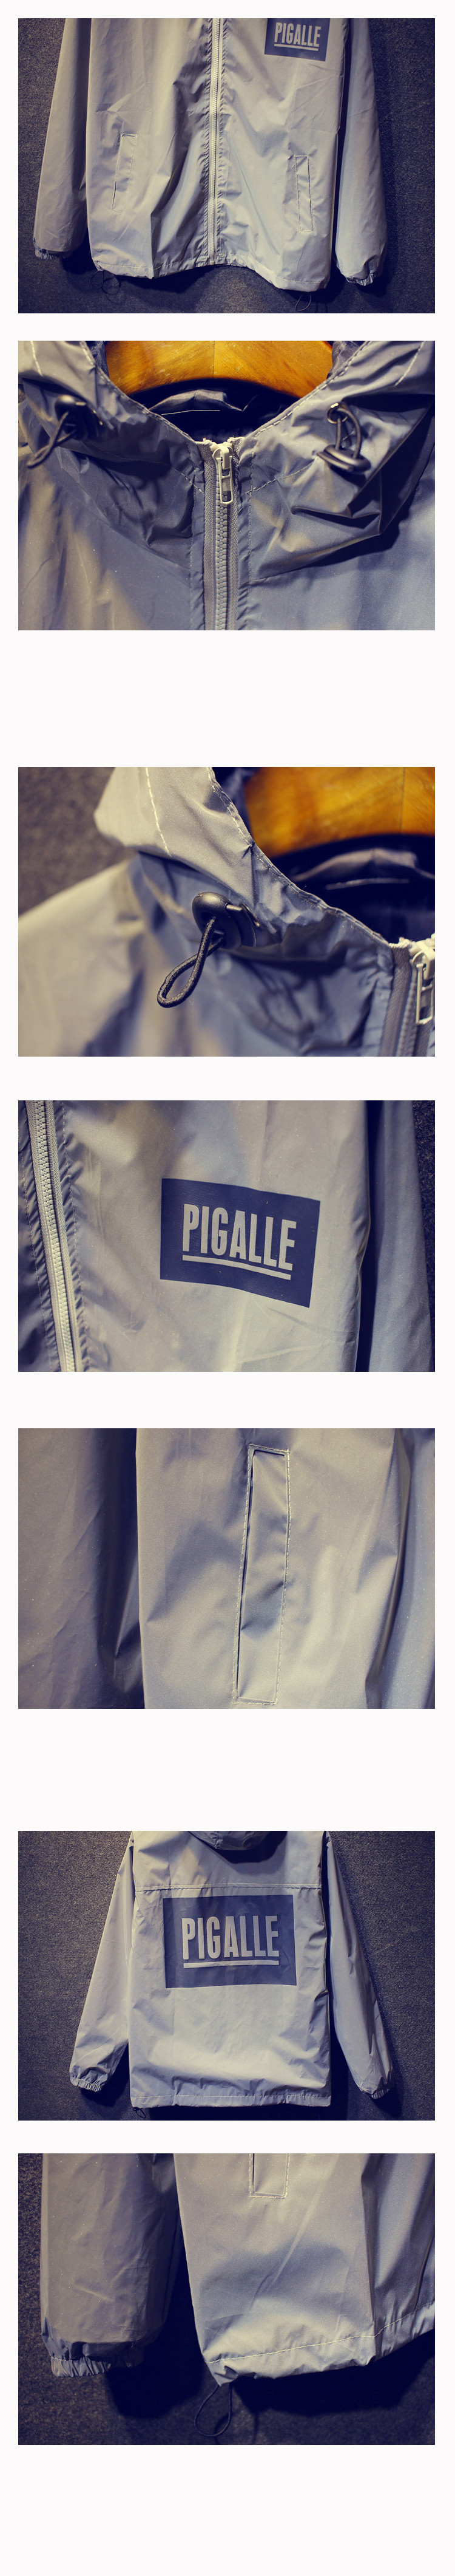 93683a513 Brand Clothing Pigalle Jackets Men Skateboard 3M Reflective Jacket  Waterproof Casual Coats Outwear Hooded Raincoat Size S XXL-in Jackets from  Men's ...